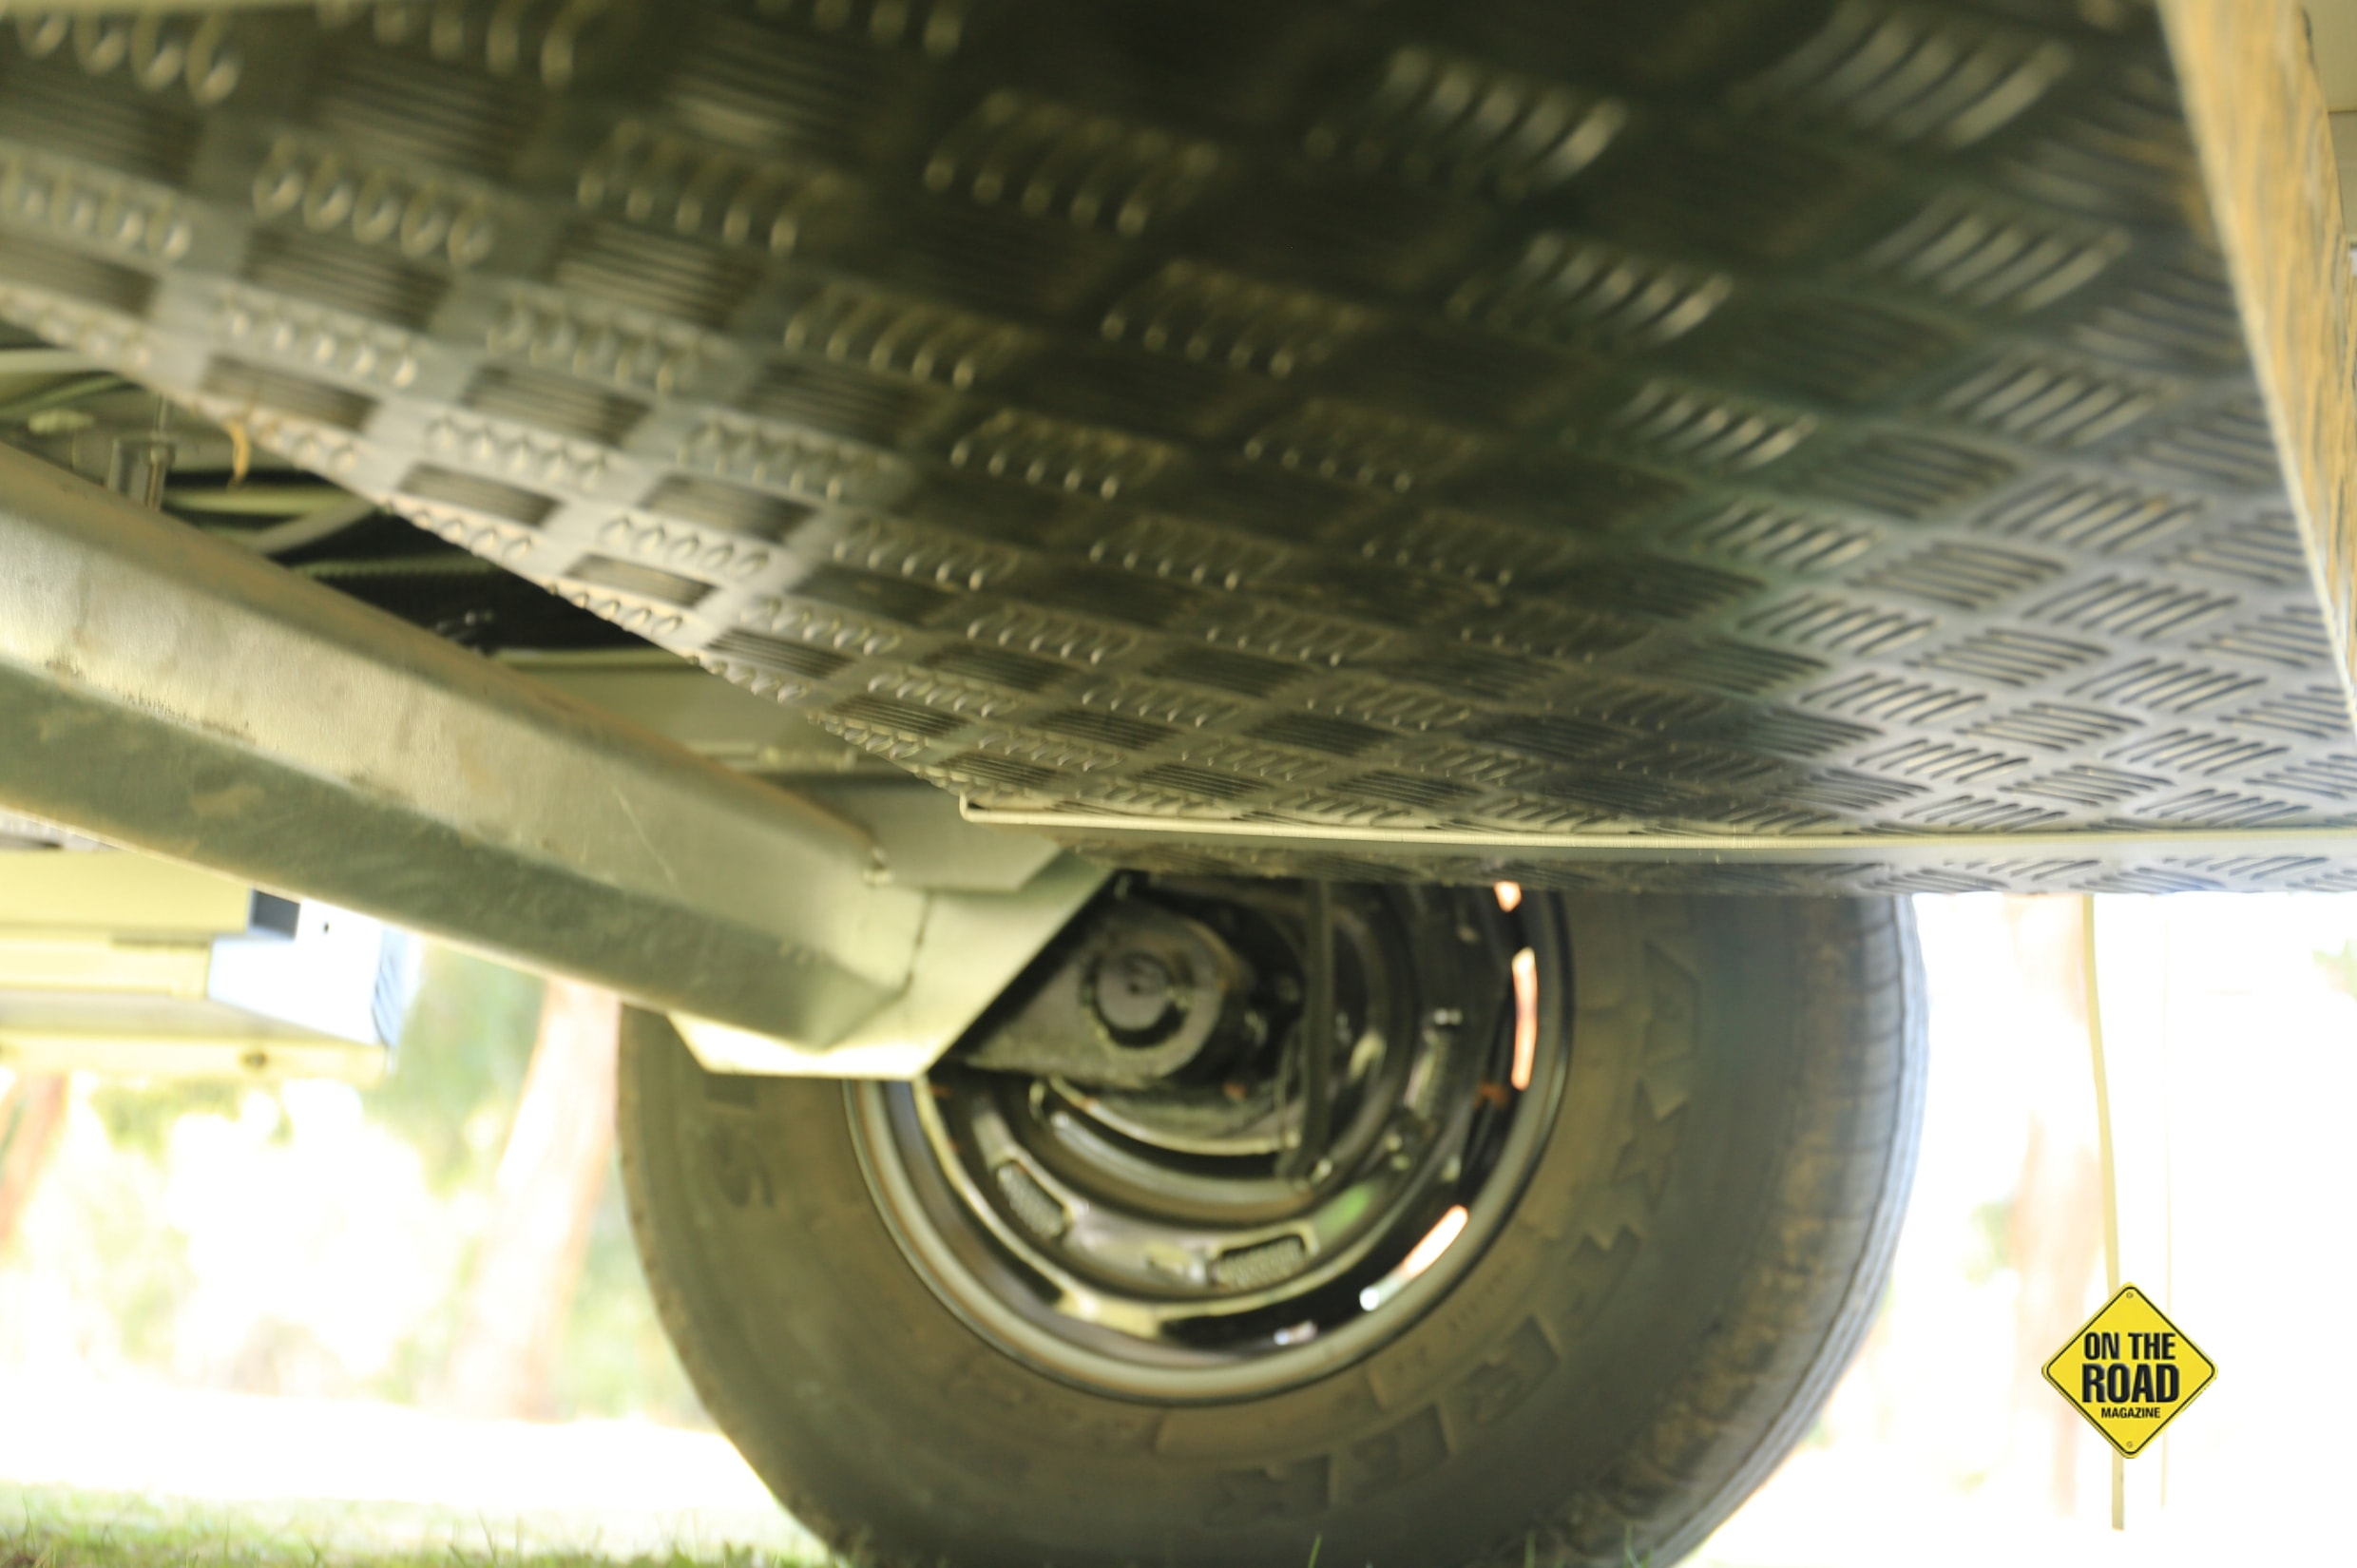 The suspension is the well-proven rubber torsion bar system that is used widely in America.